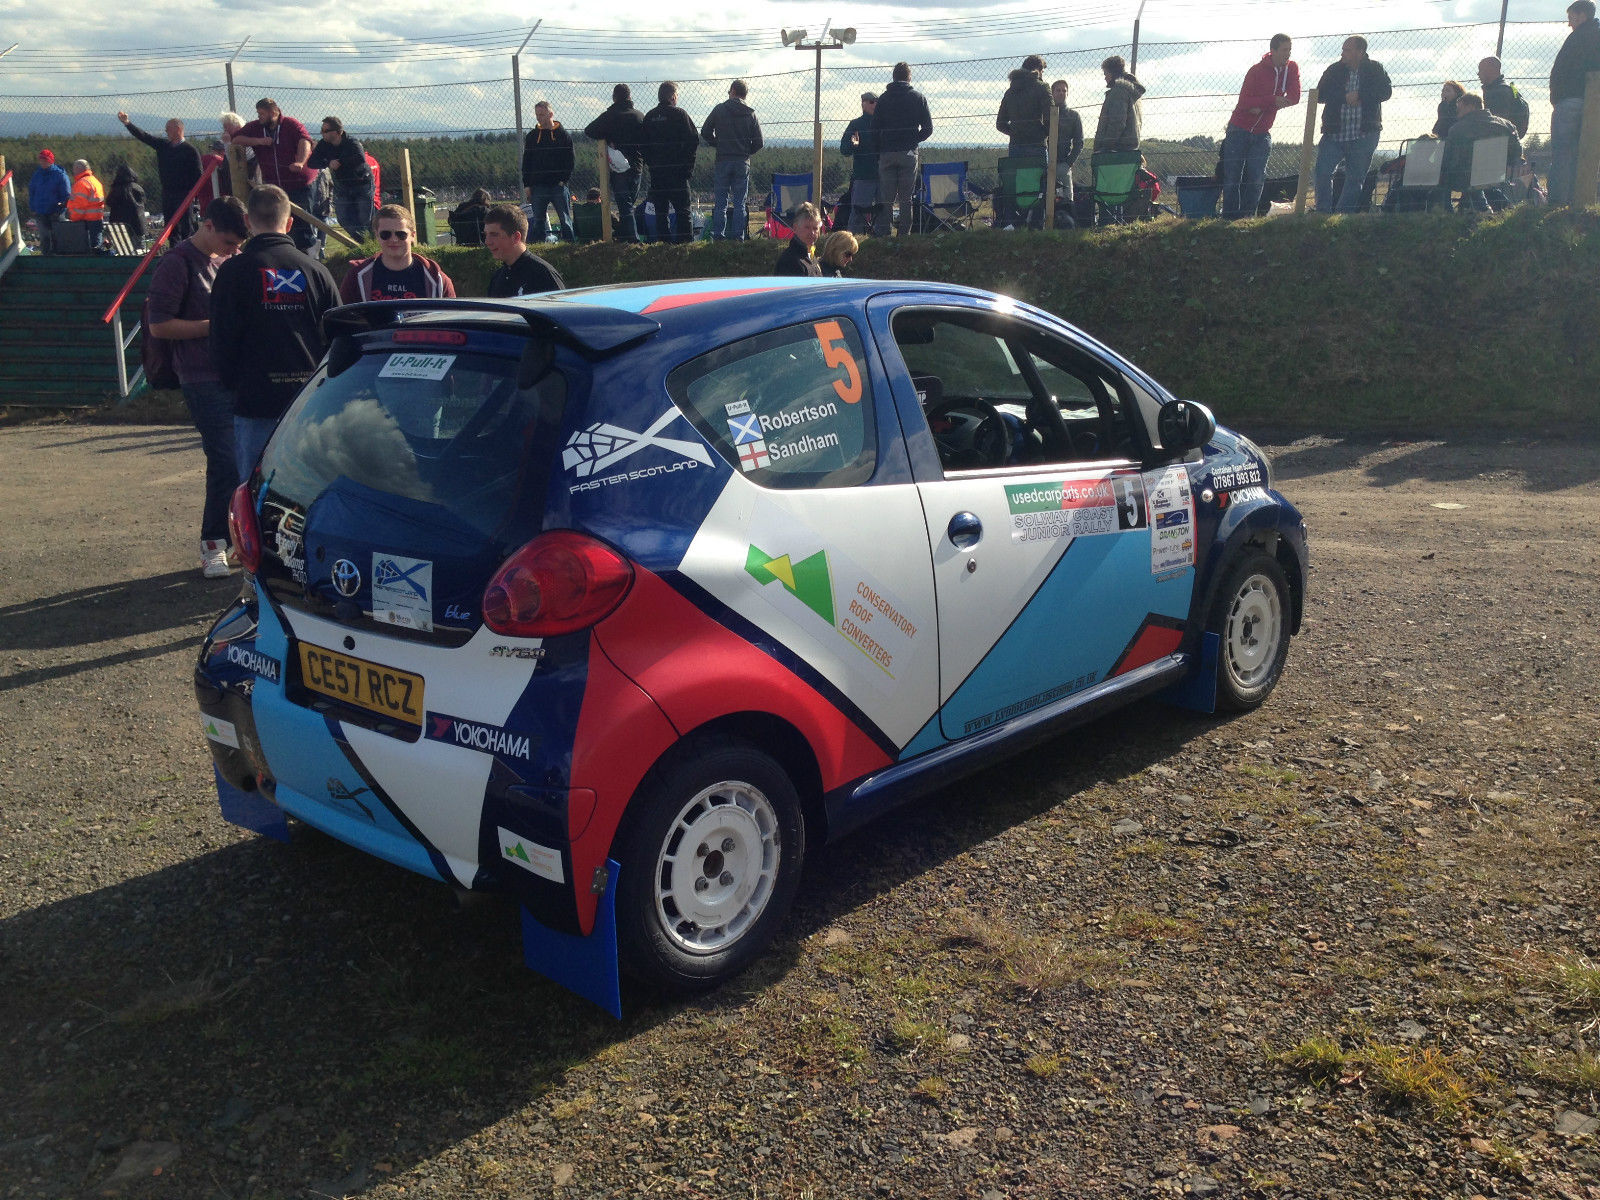 You can buy two Aygo rally cars on eBay